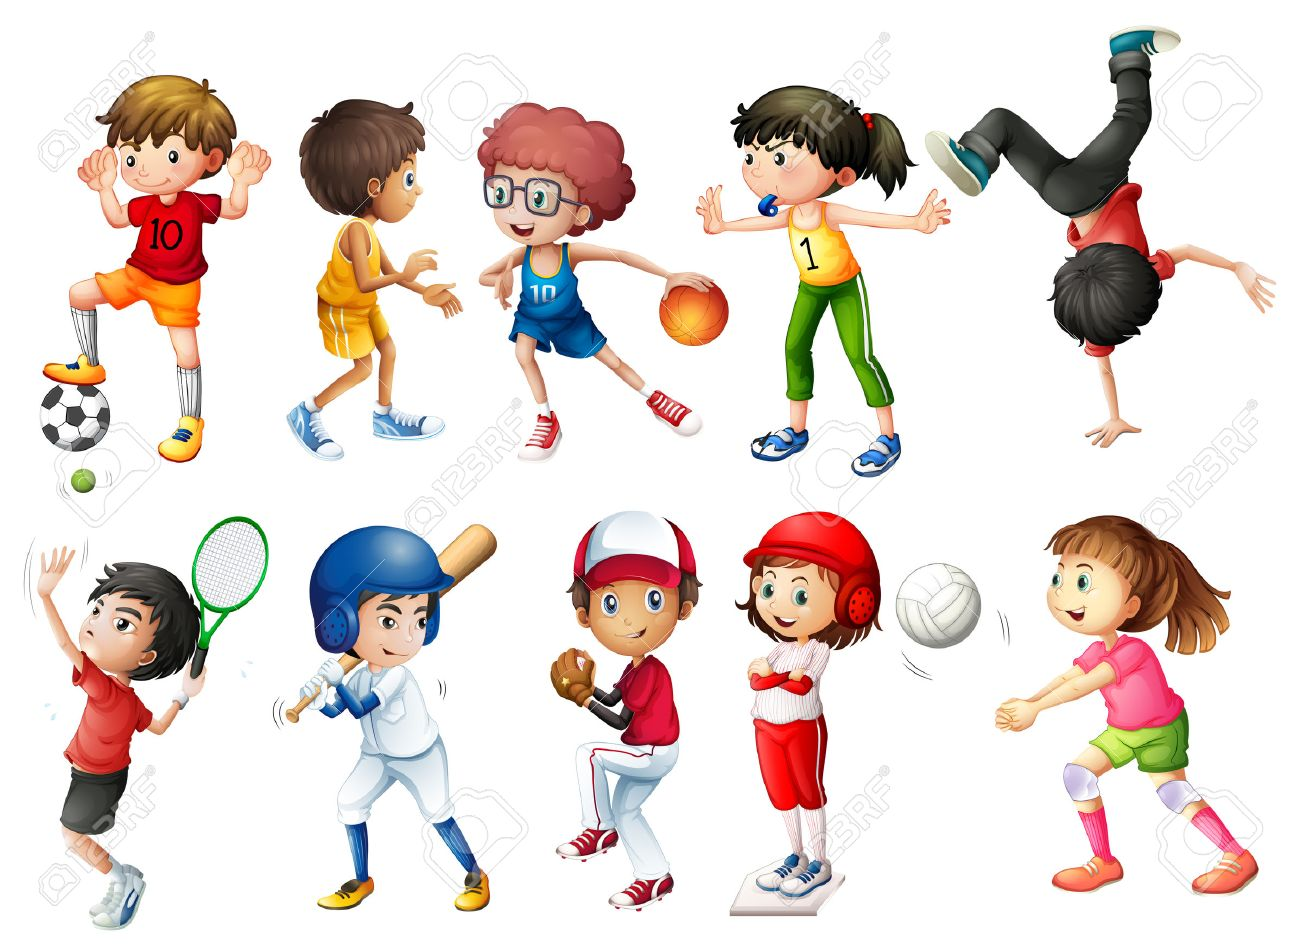 Kids playing sports clipart 1 » Clipart Station.